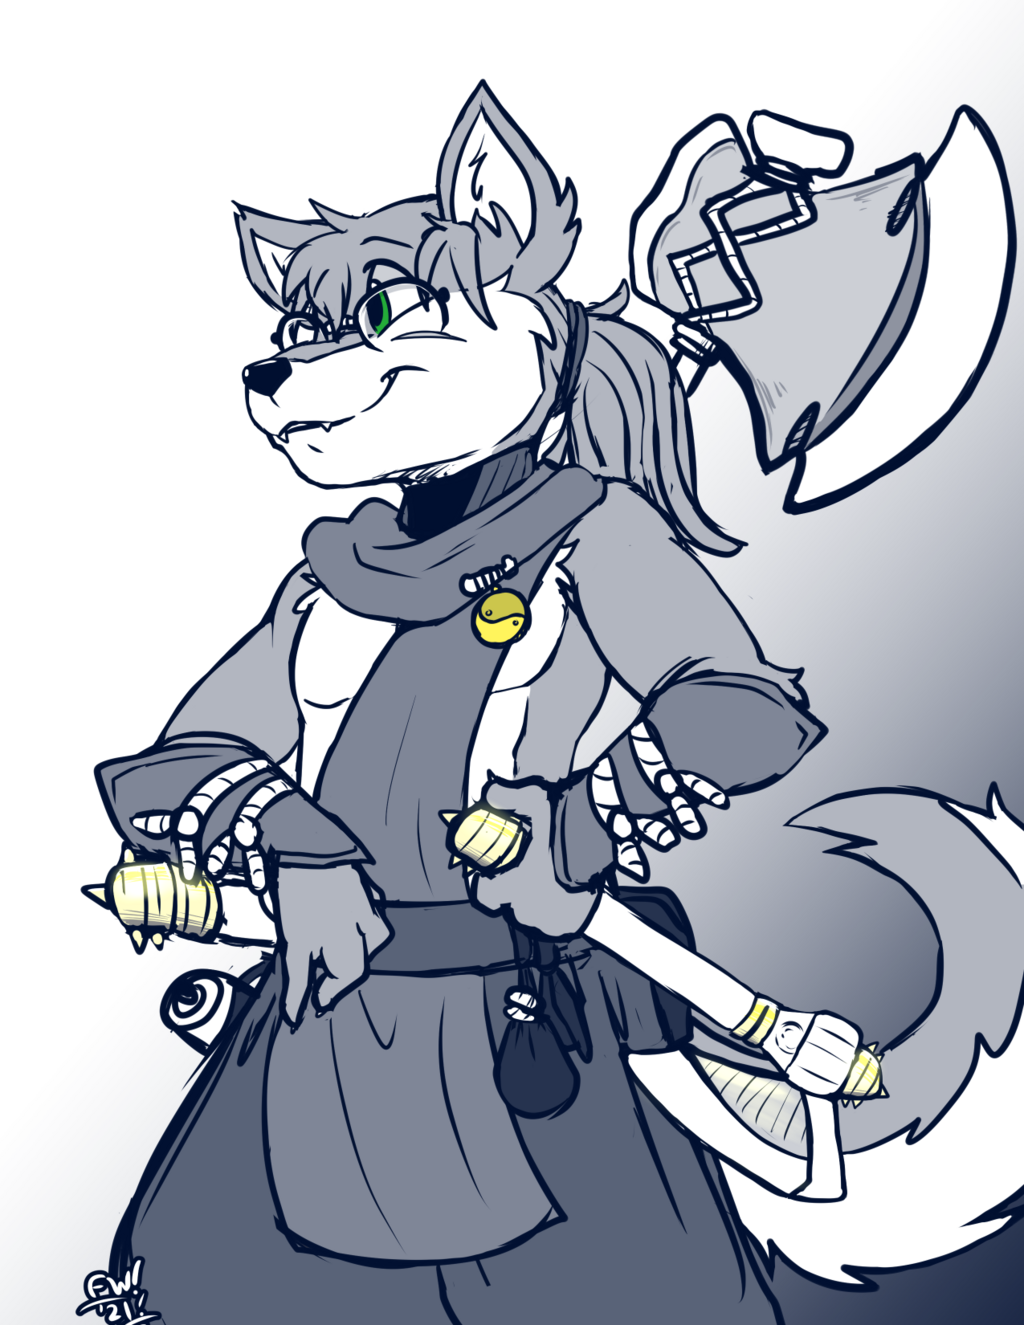 Most recent image: Axe Wolf Returns! (Nioh 2)